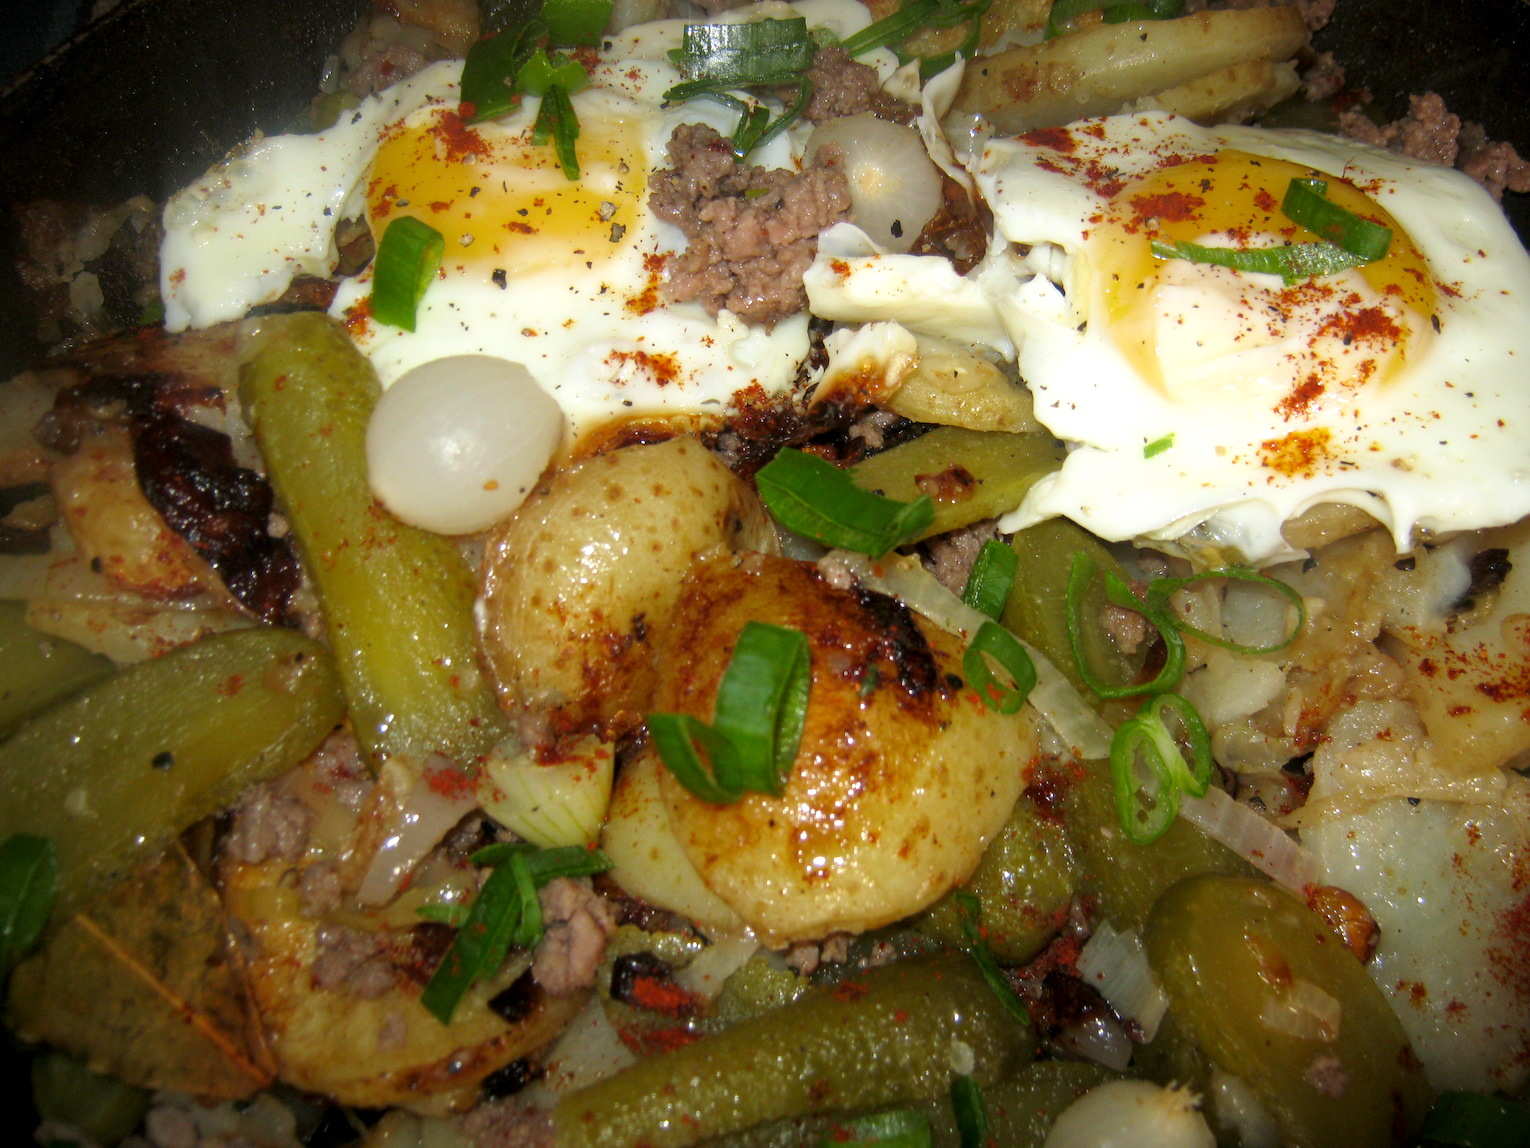 Farm Style Pan Fried Potatoes with Eggs, Mince and Pickles